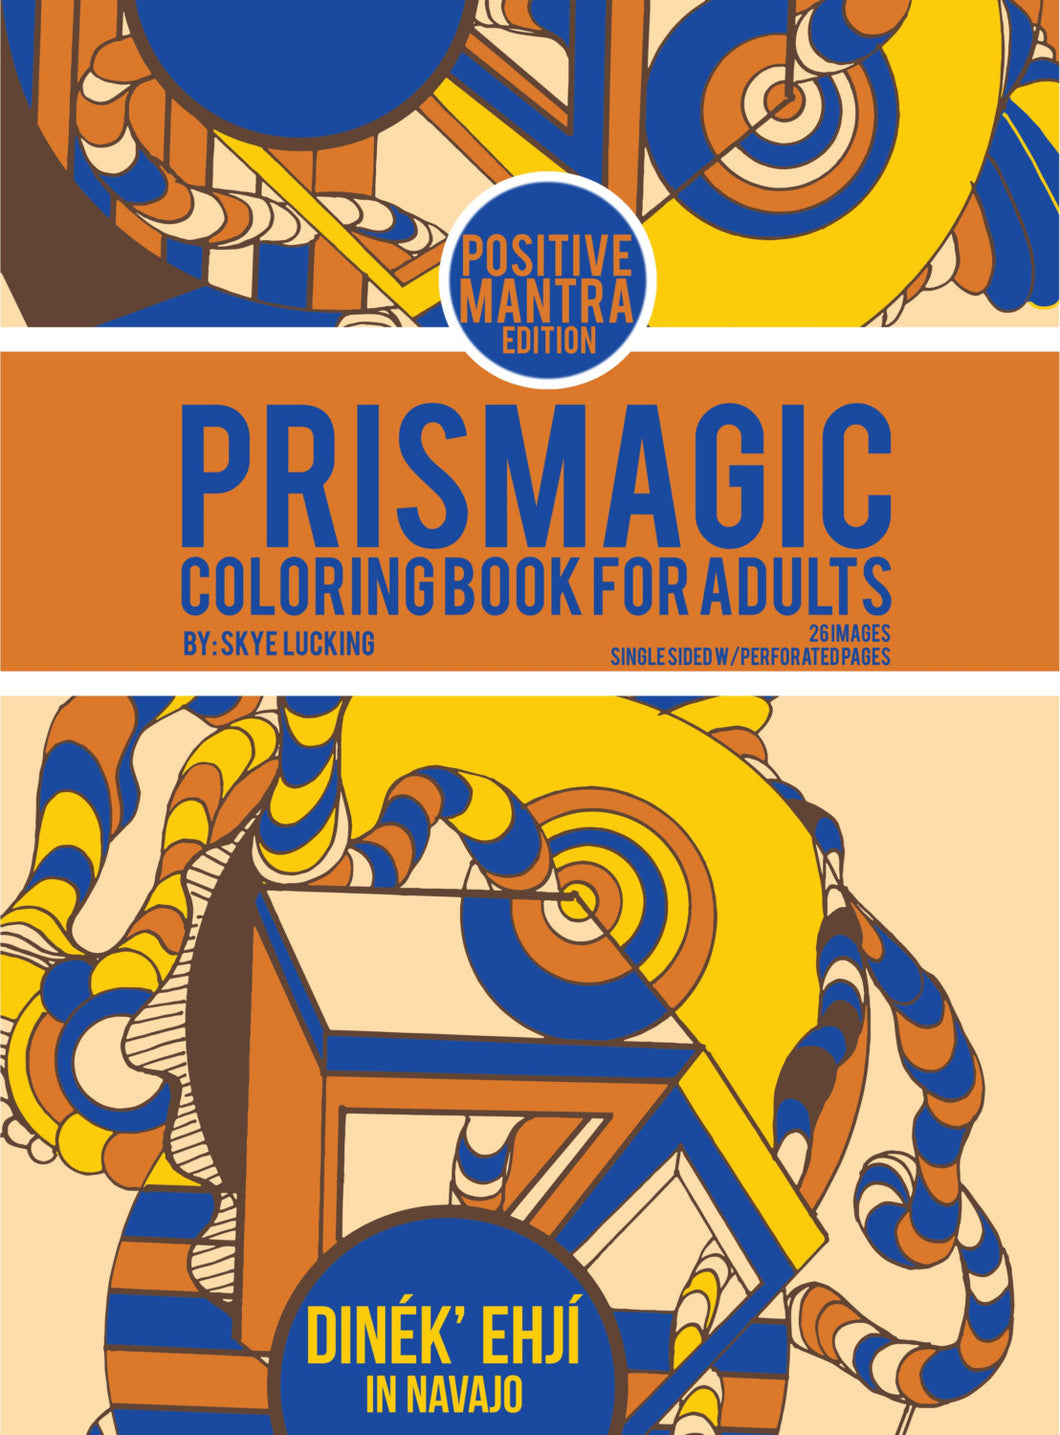 Prismagic in Navajo - Coloring Book for Adults - Positive Mantra Edition